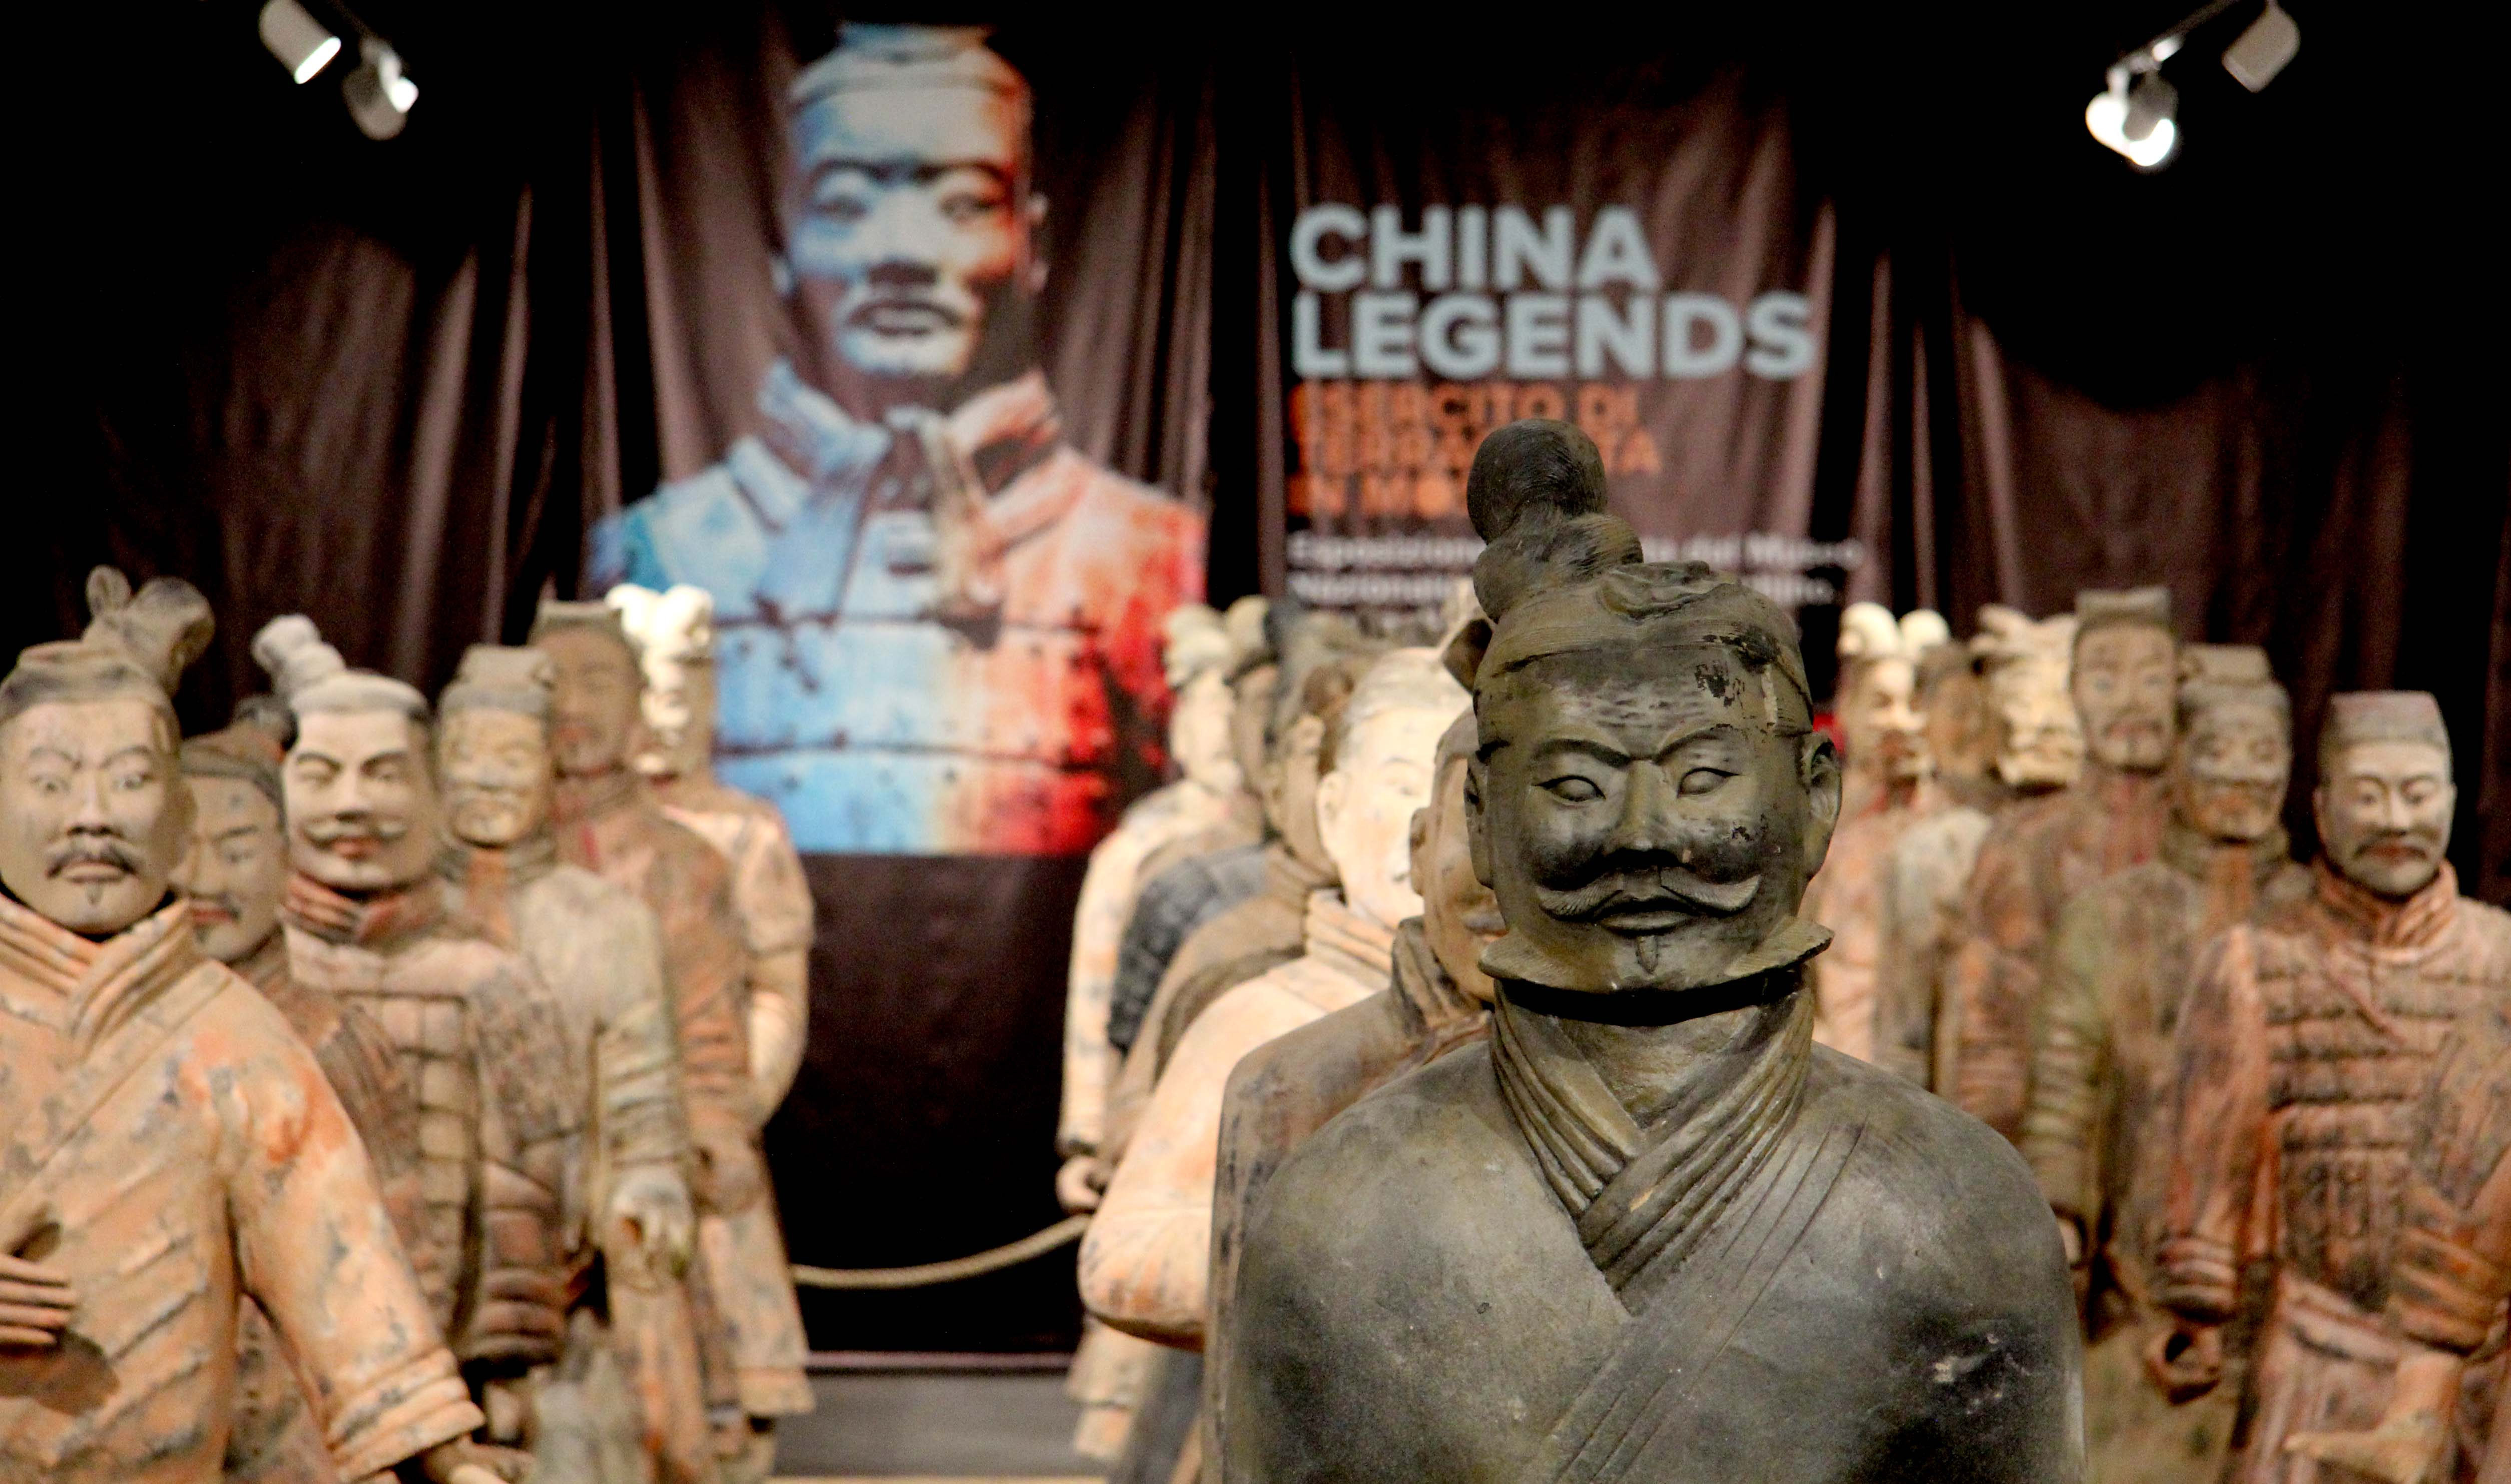 China Legends, i guerrieri di terracotta in mostra all'Outlet